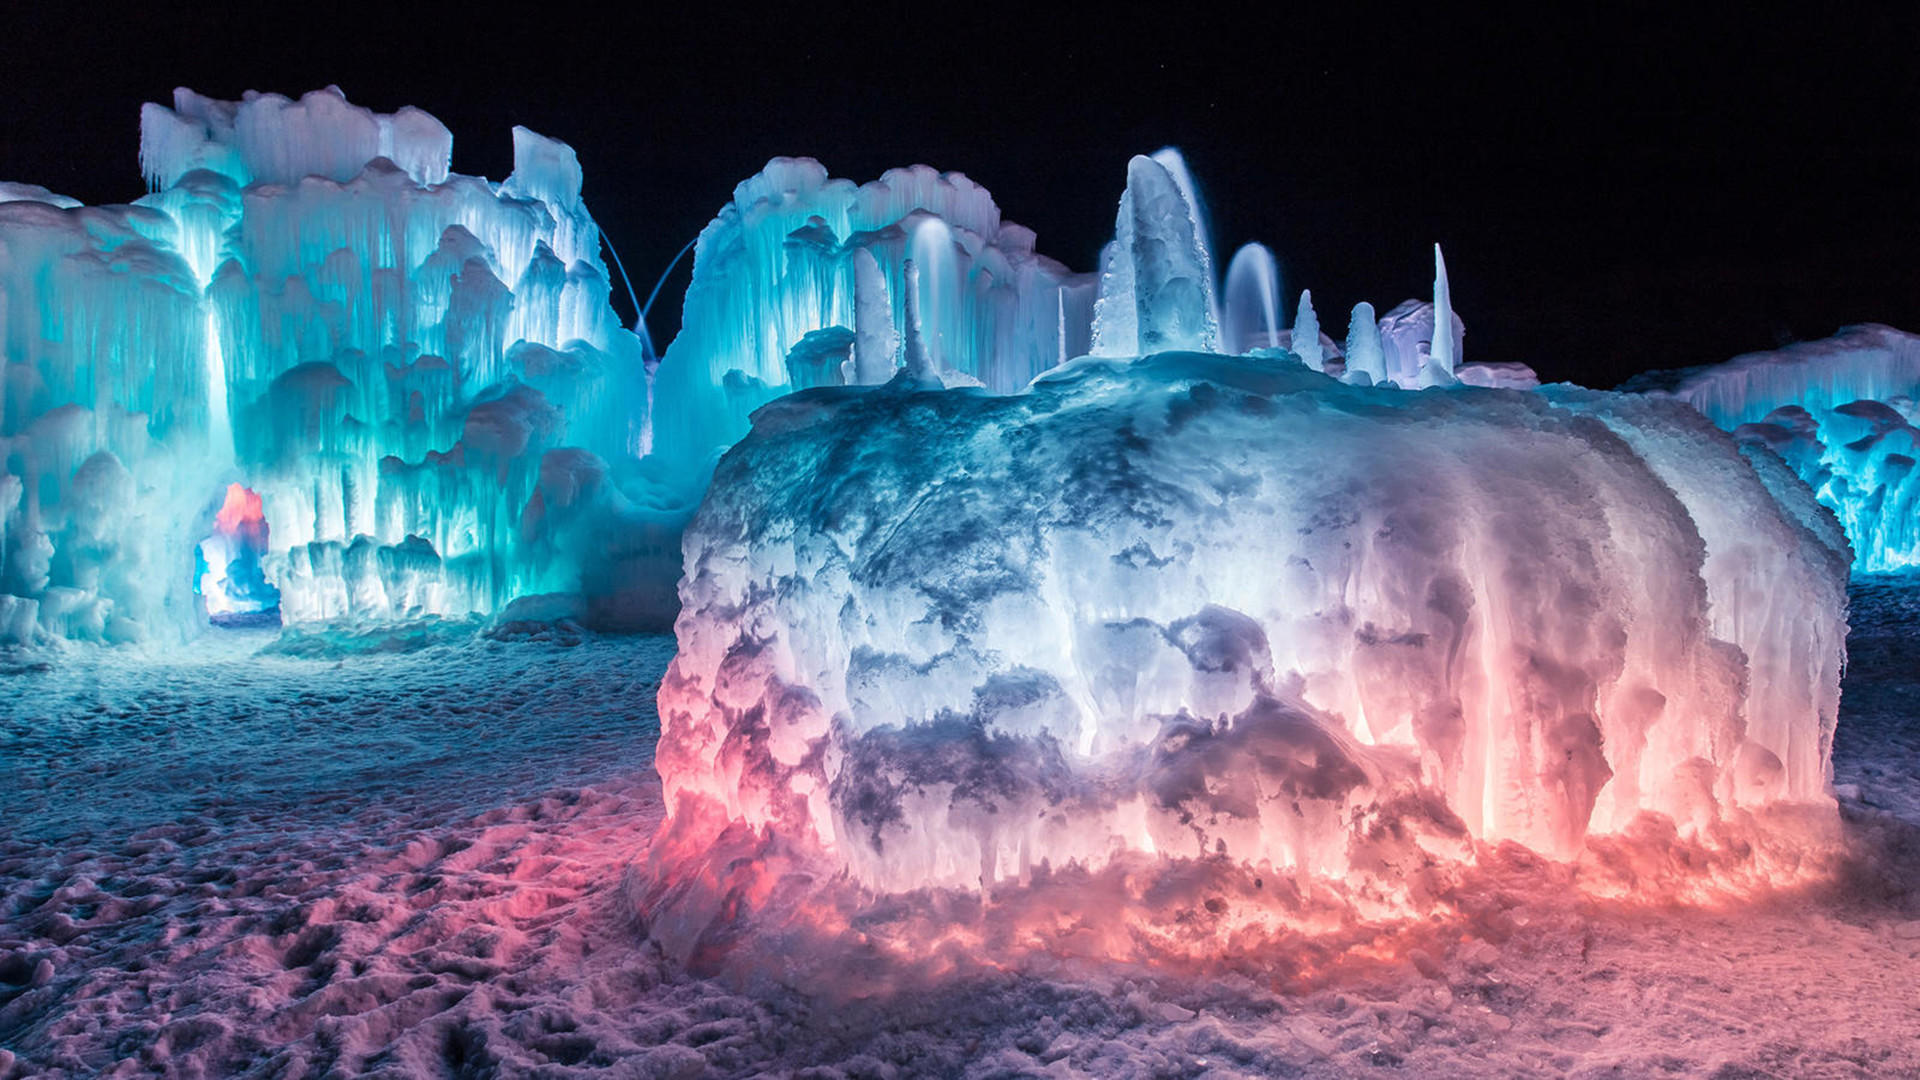 Instagrammers Get Ready A Picturesque Ice Castle Is